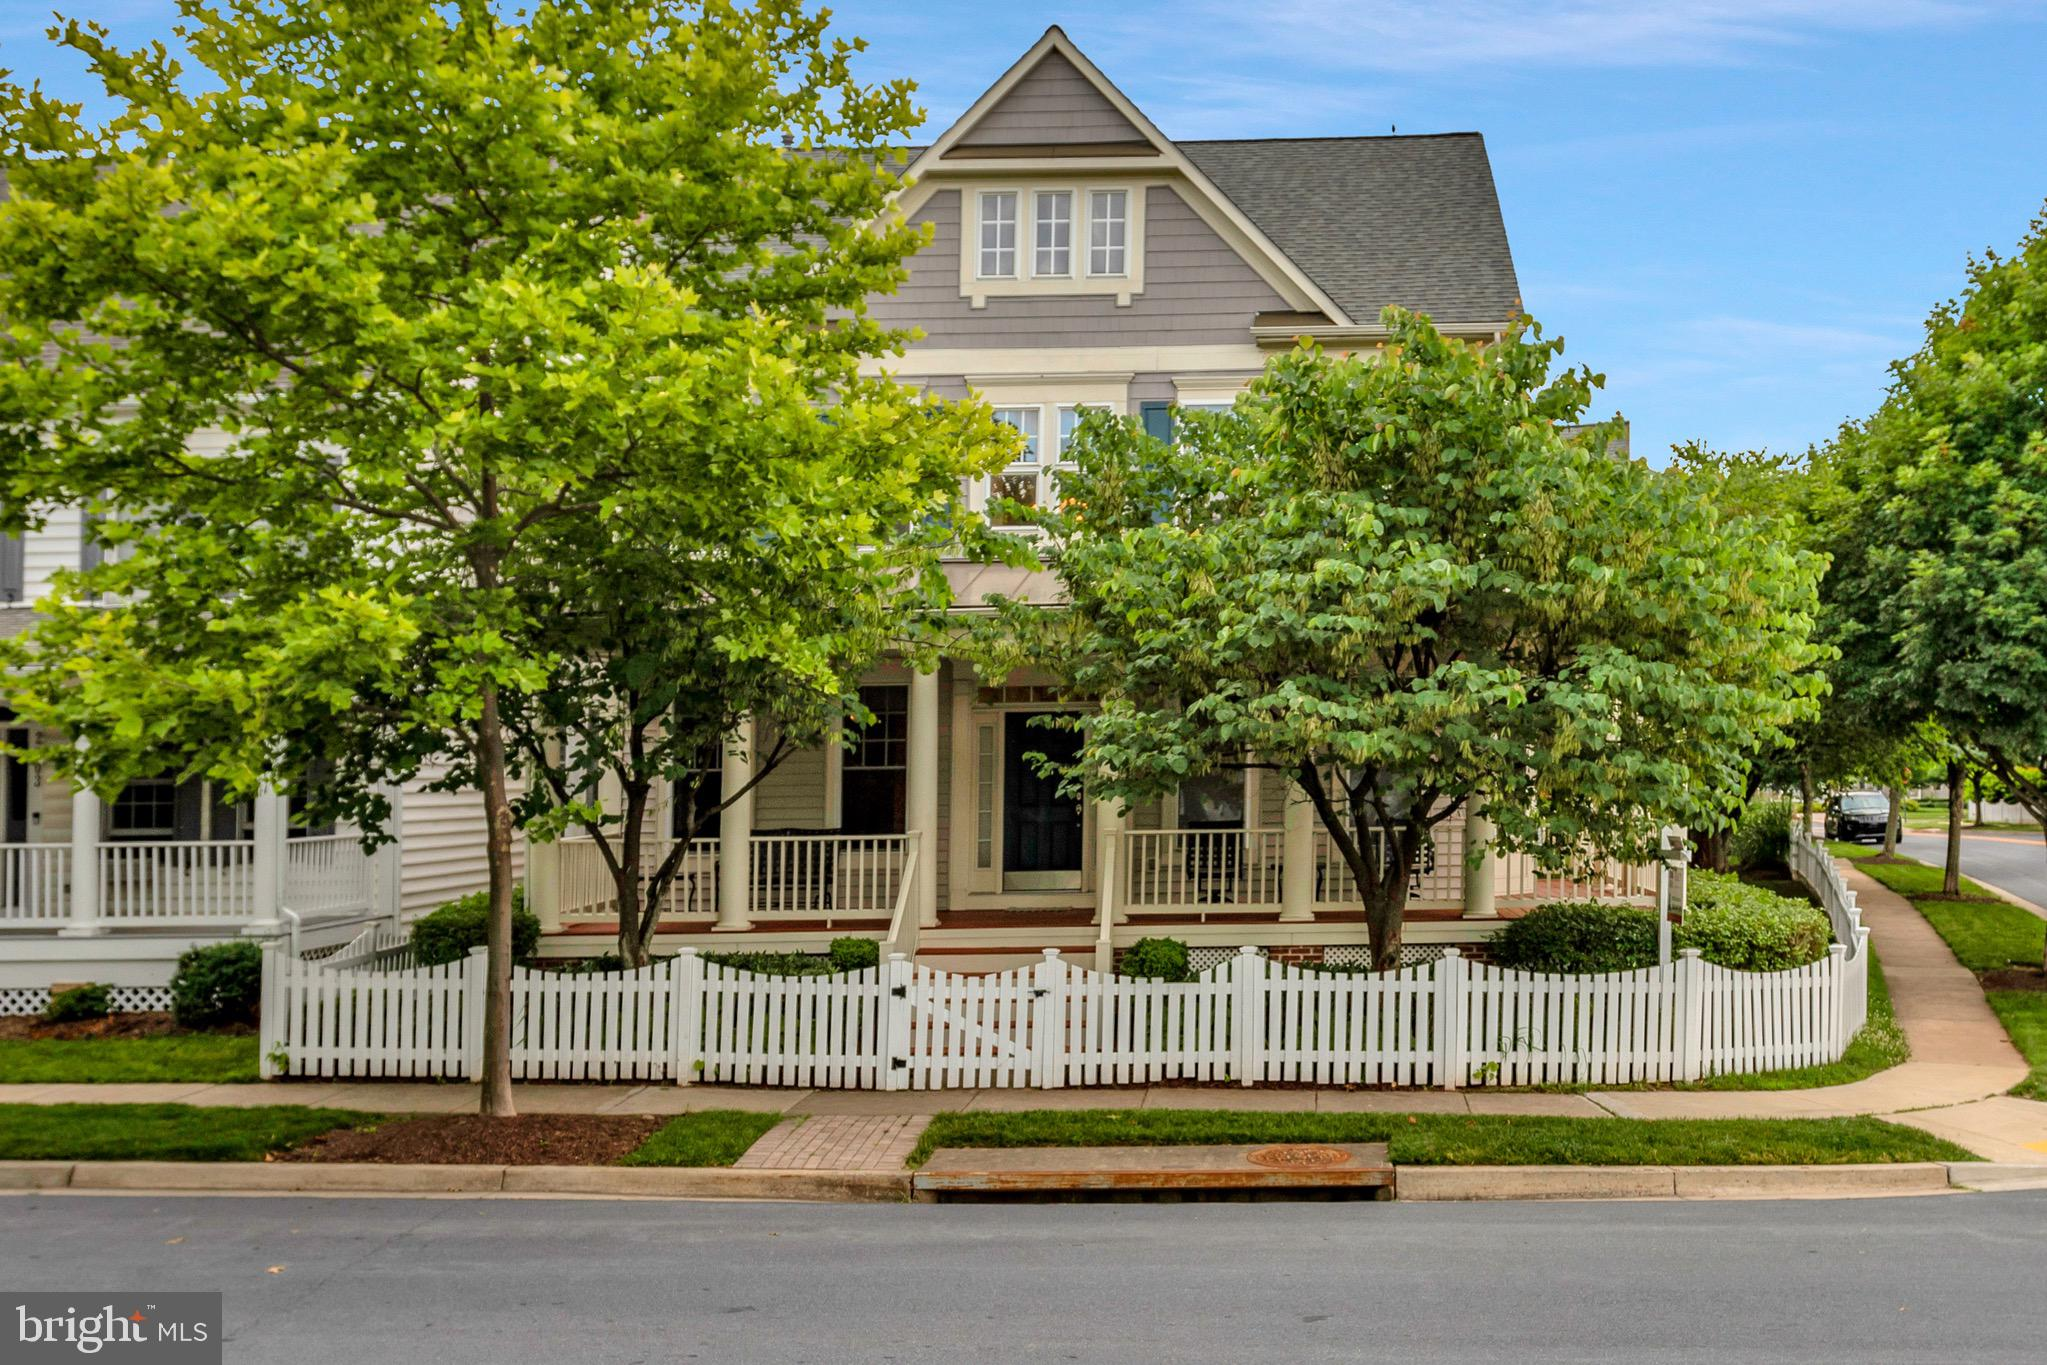 Your dream home, complete with white picket fence in King Farm, is within your reach but will not la